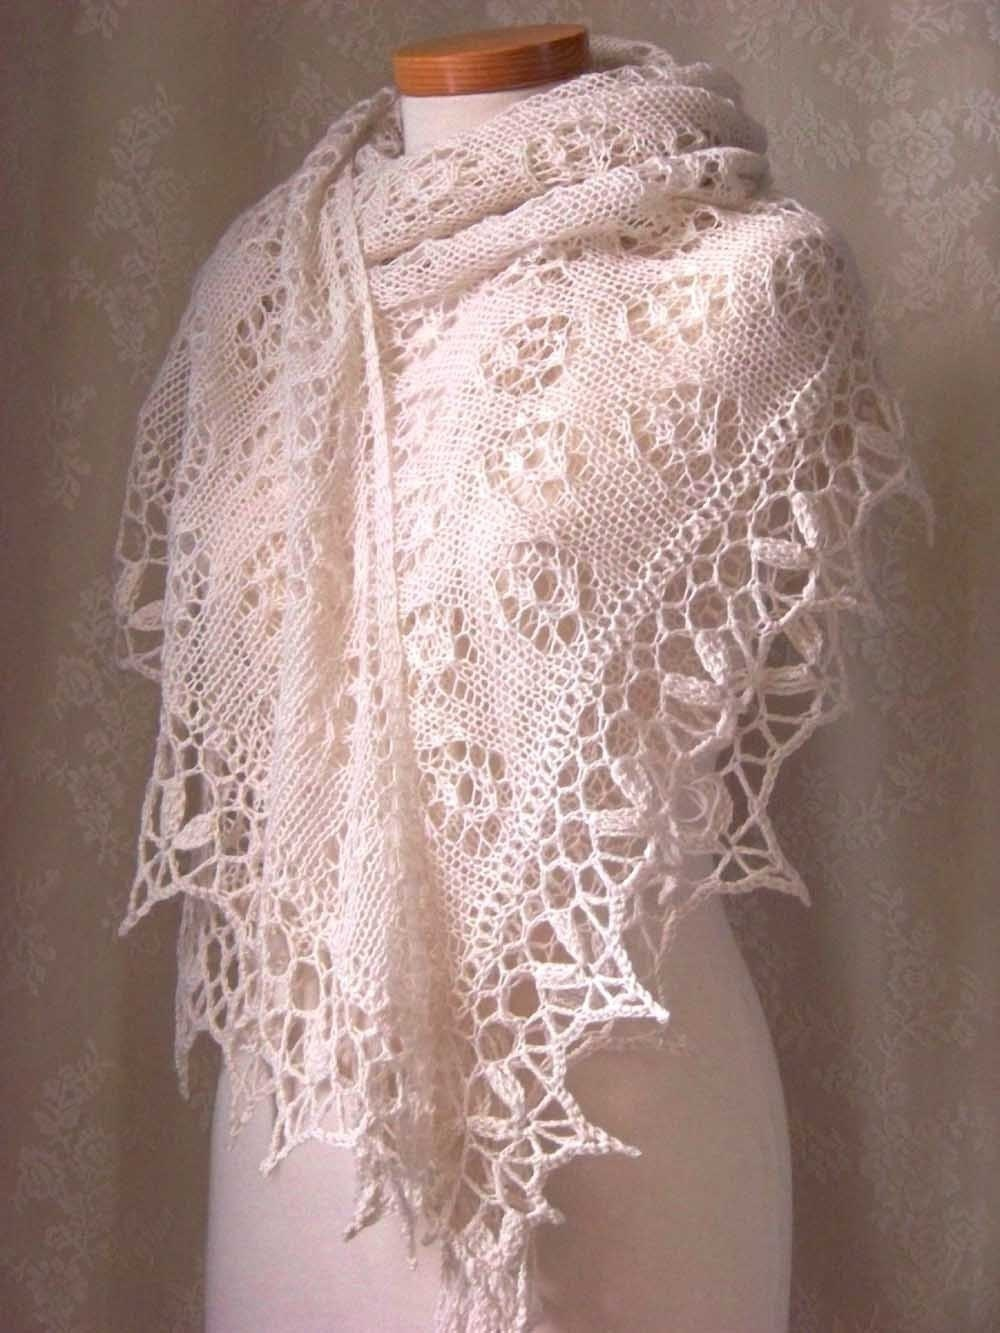 Knitting/crochet pattern Creme lace knitted shawl with